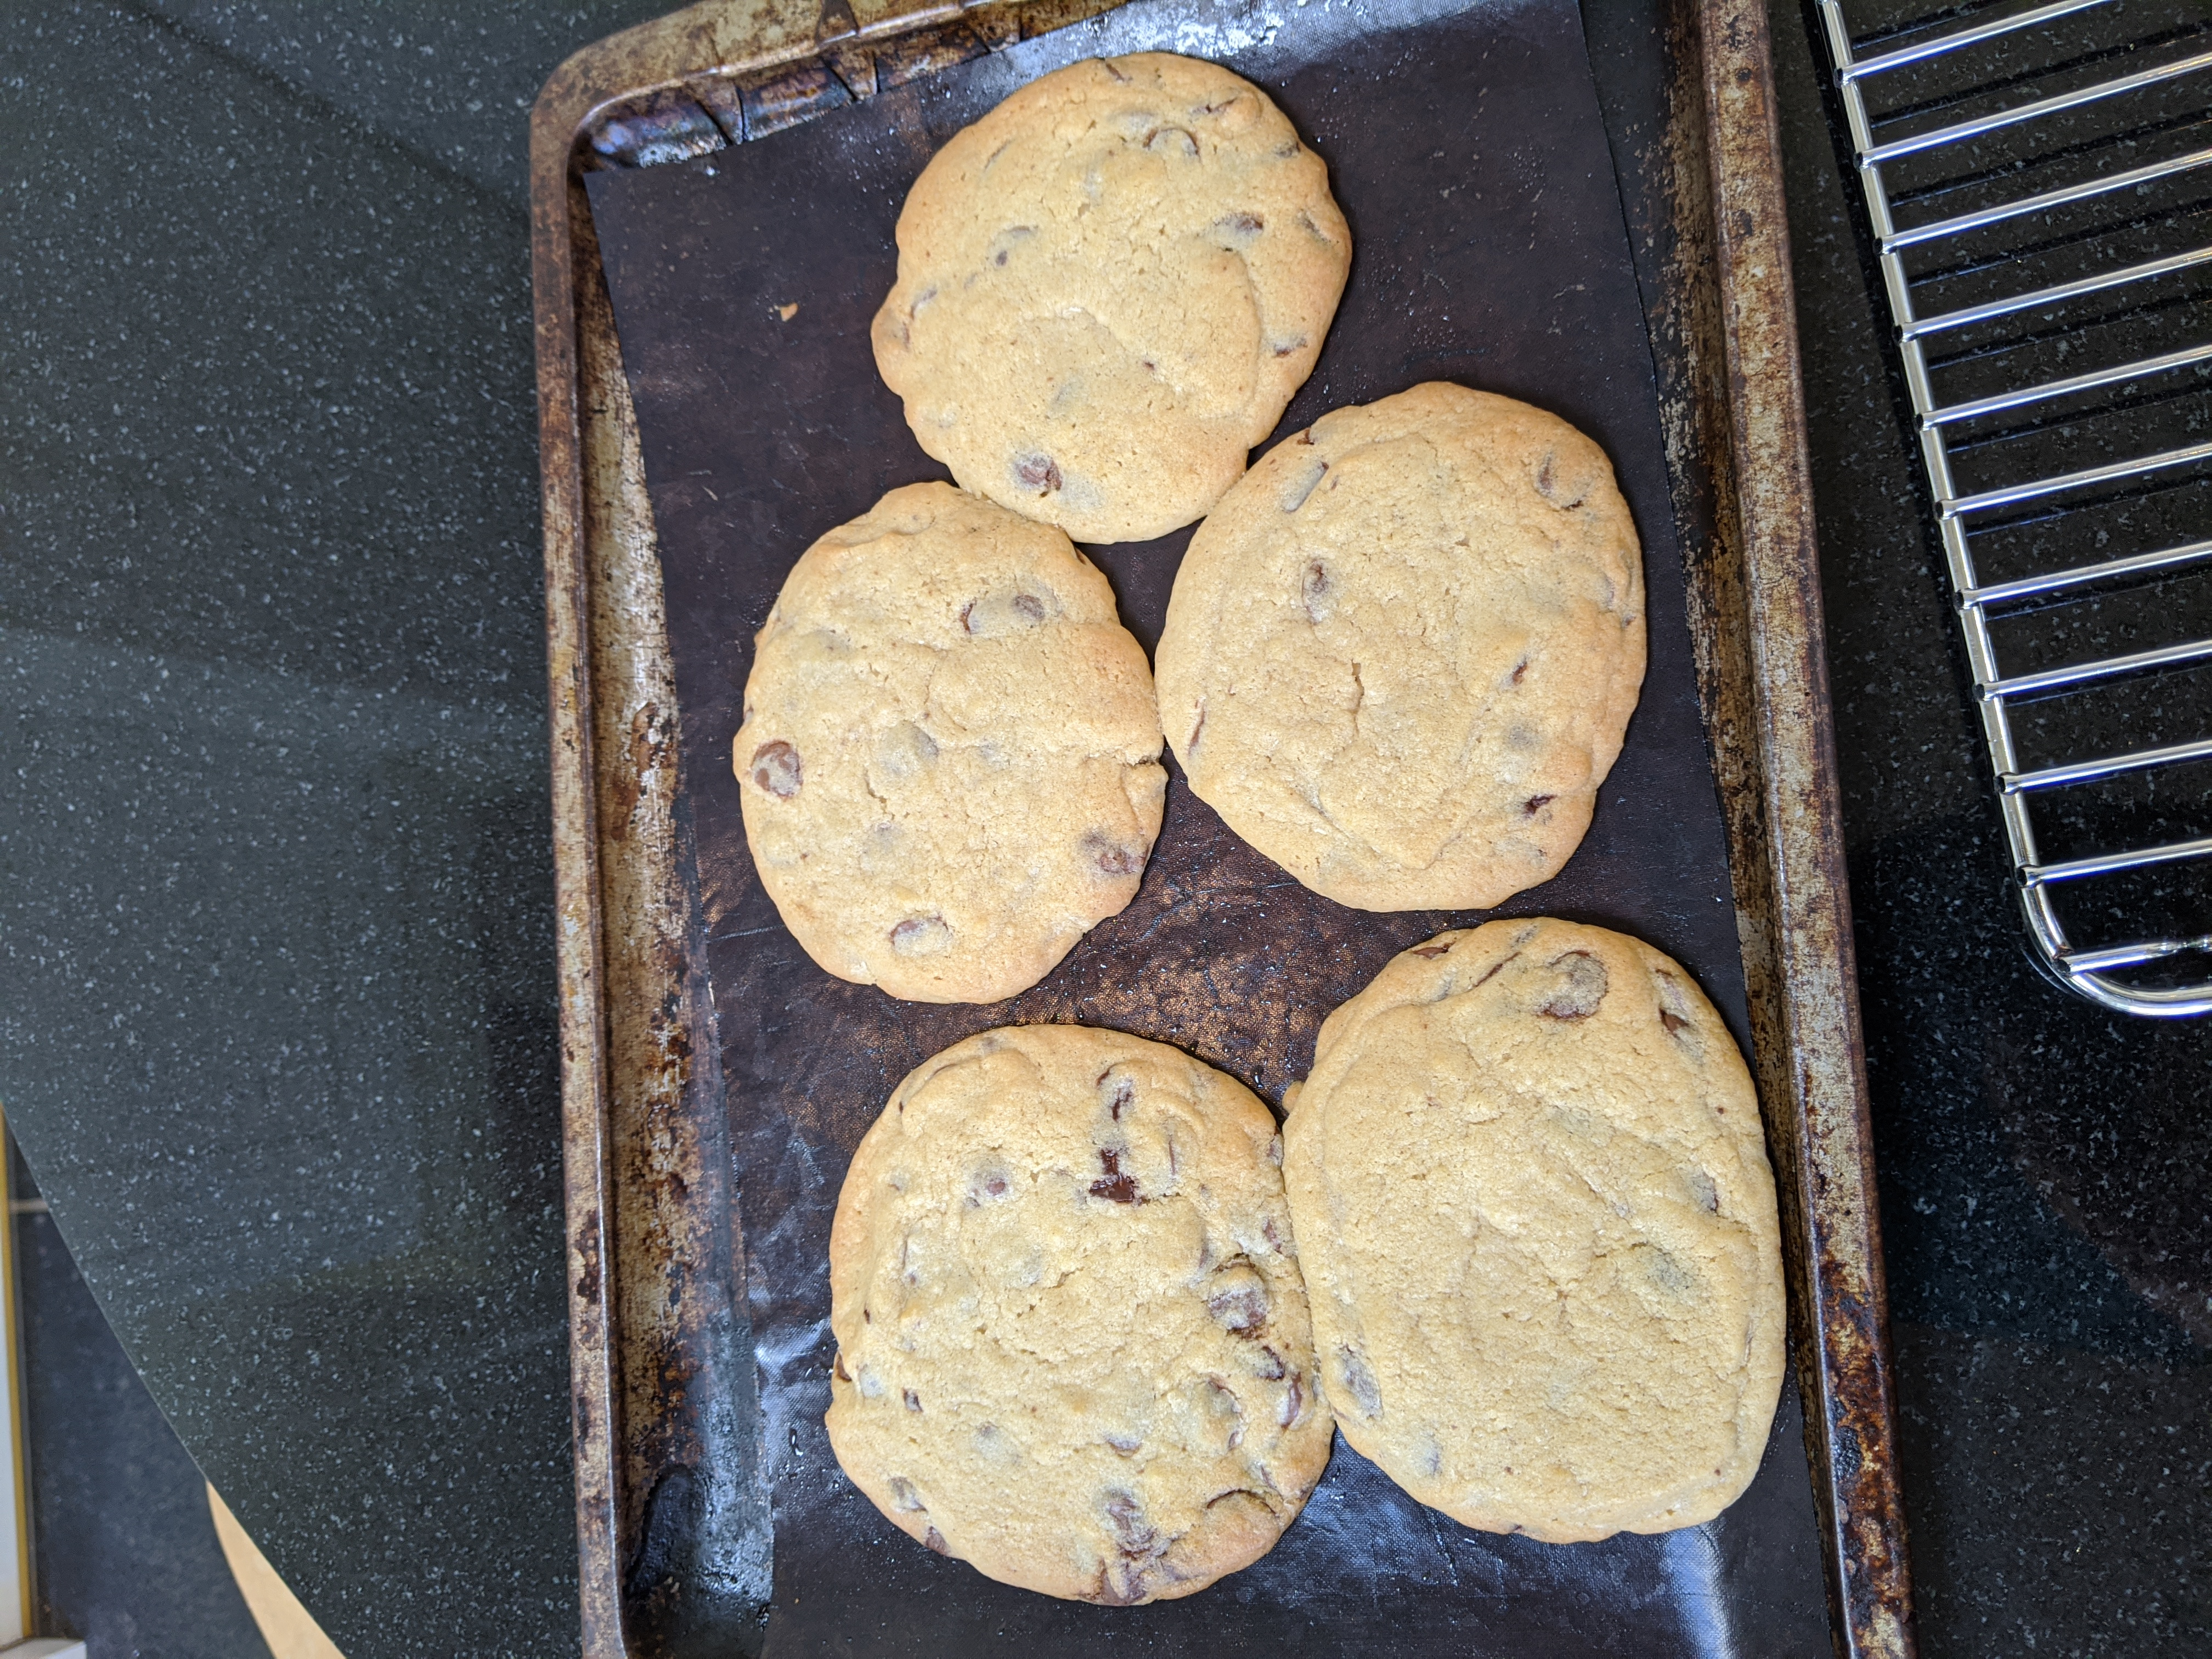 Catherine's choc chip cookies